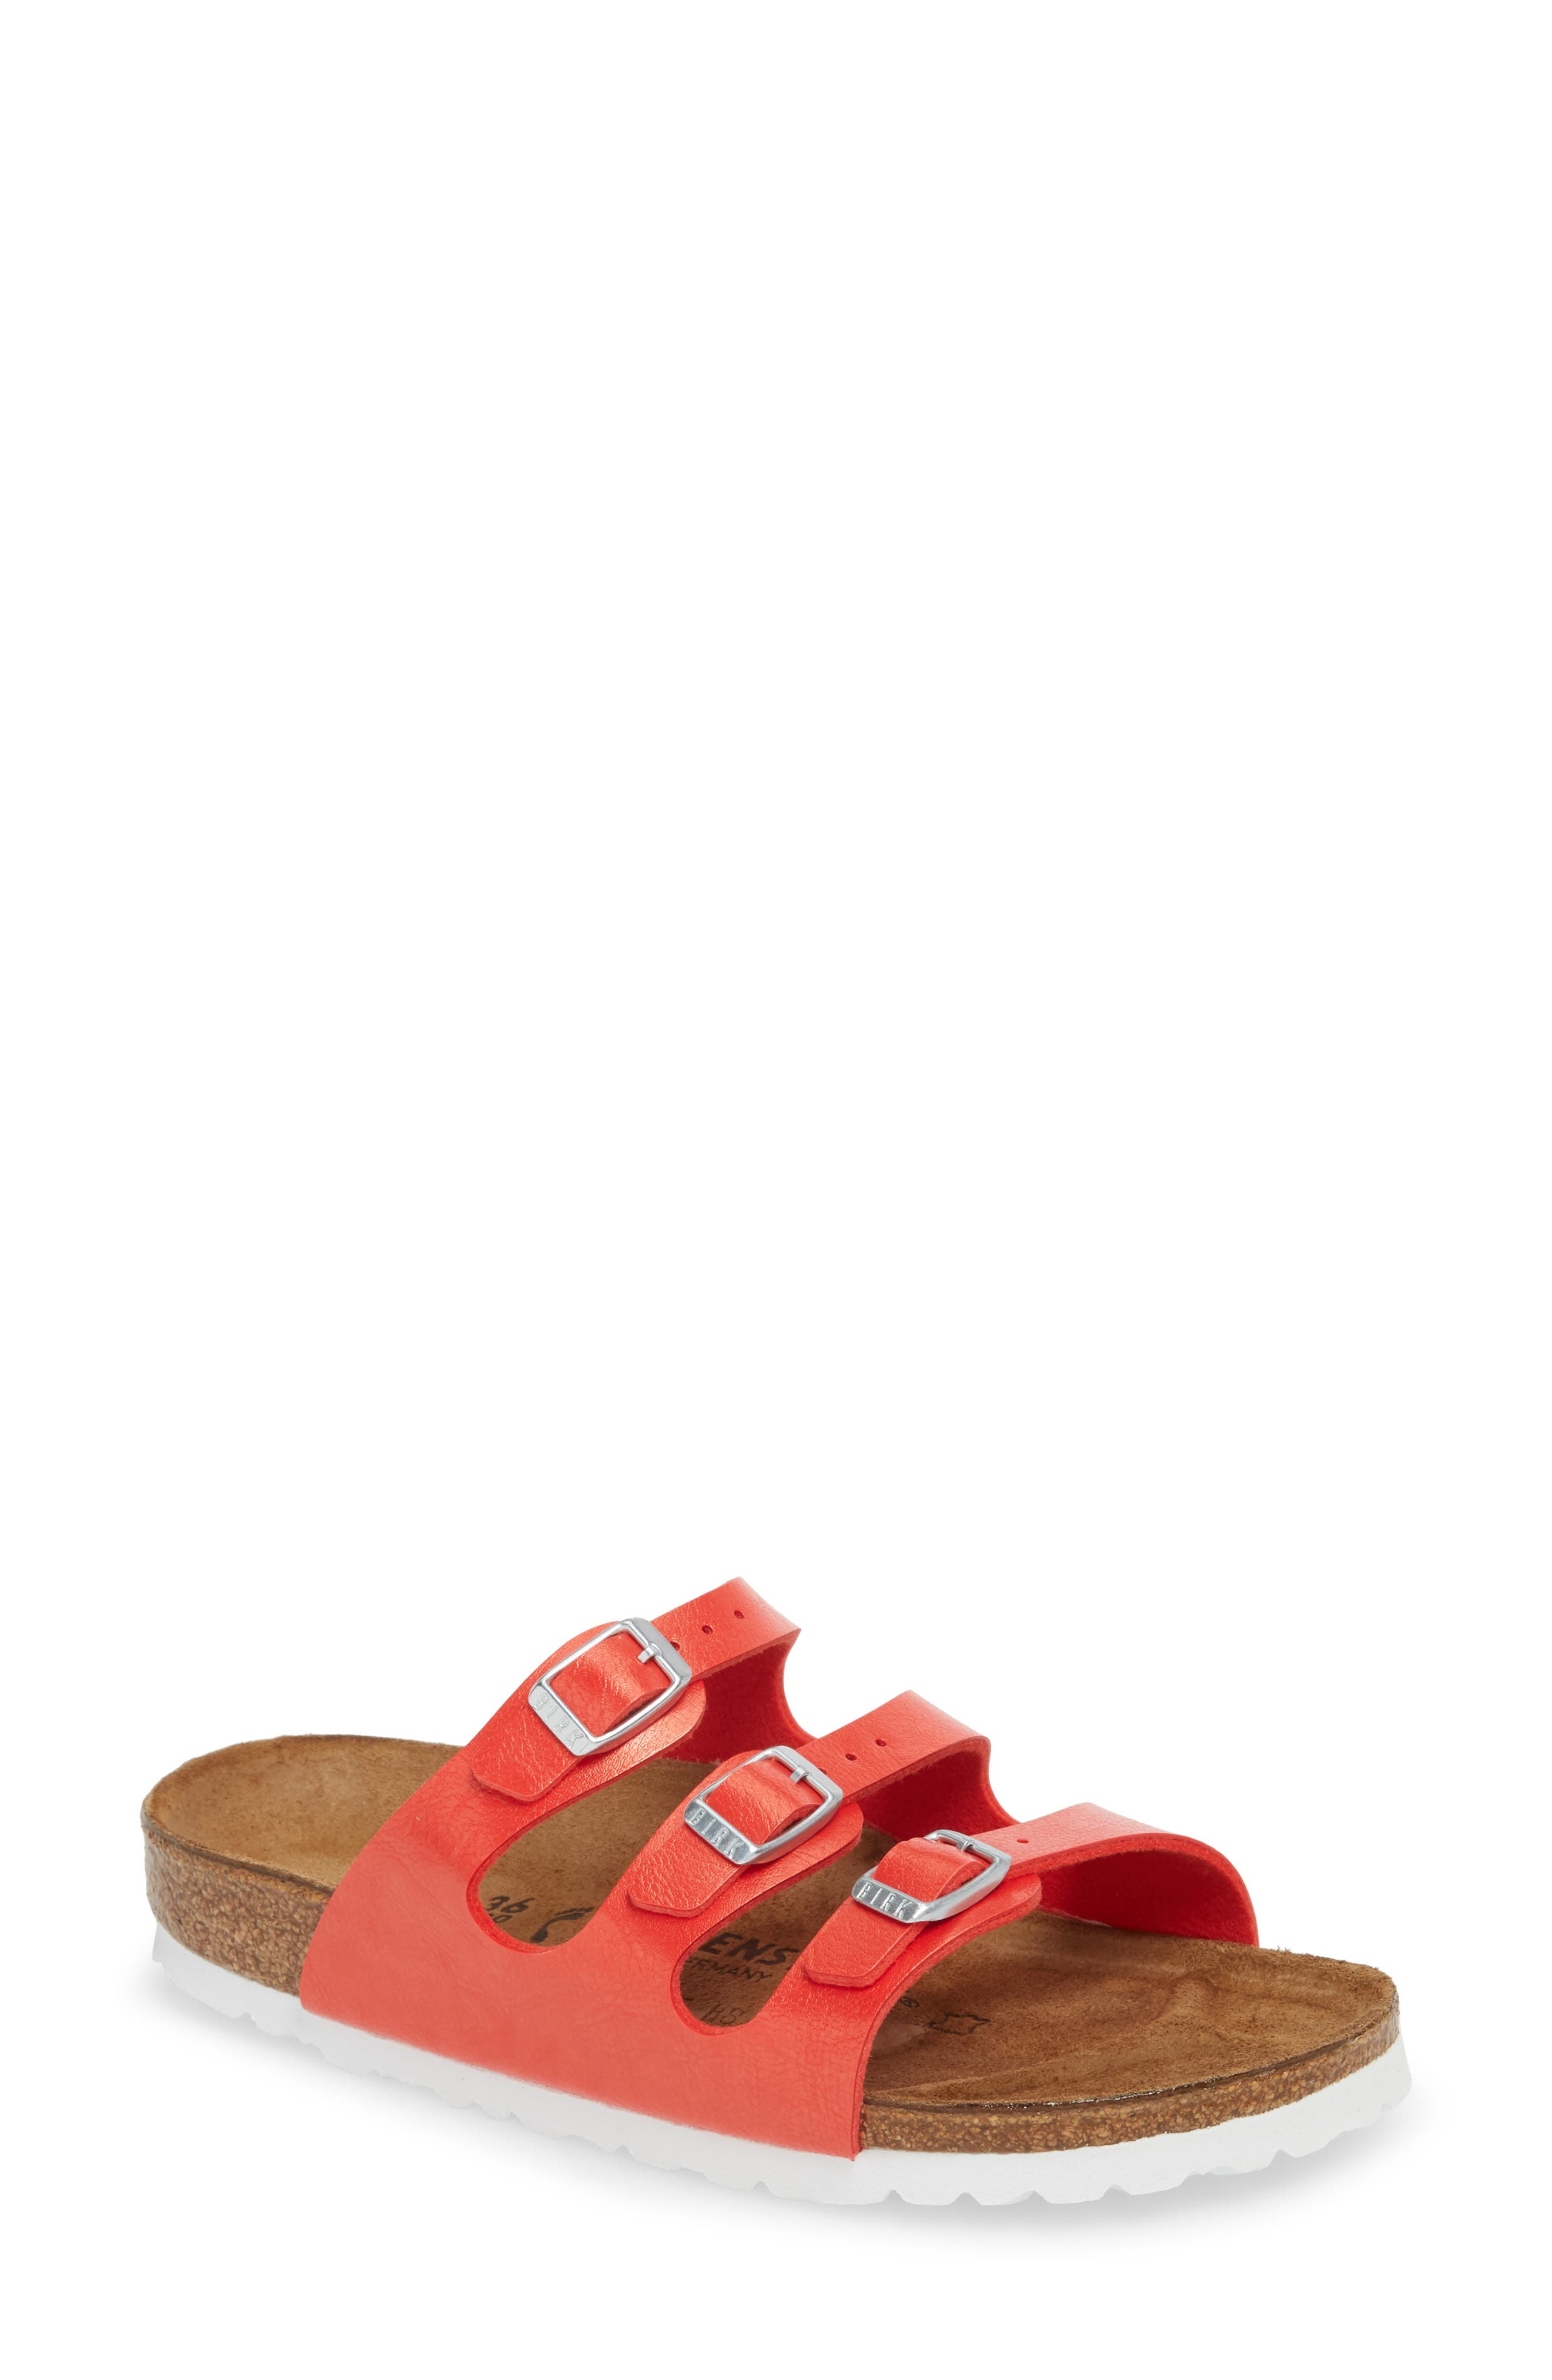 'Florida' Soft Footbed Sandal,                             Main thumbnail 1, color,                             Graceful Hibiscus Leather